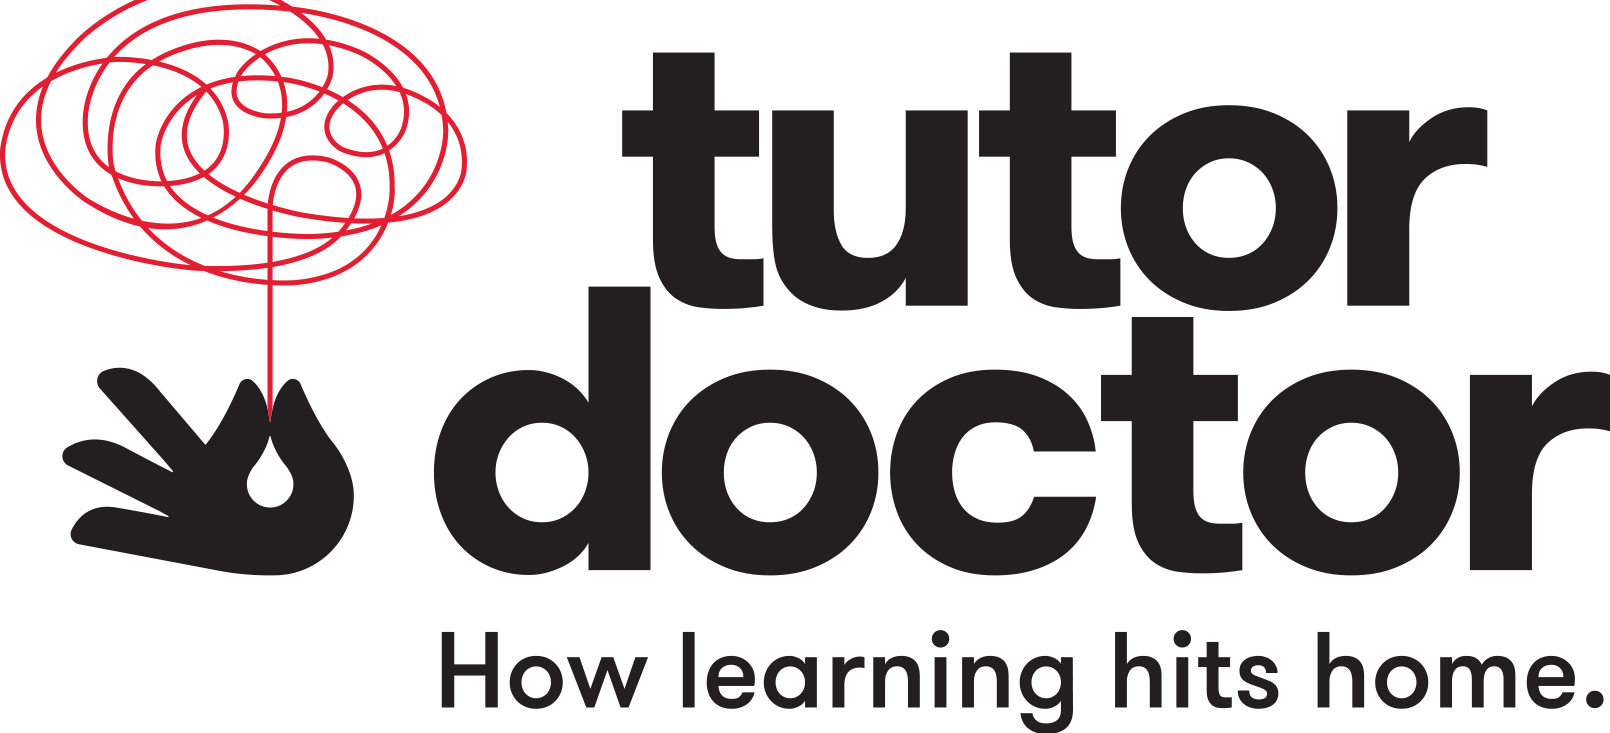 Trusted In-Home & Online Tutoring